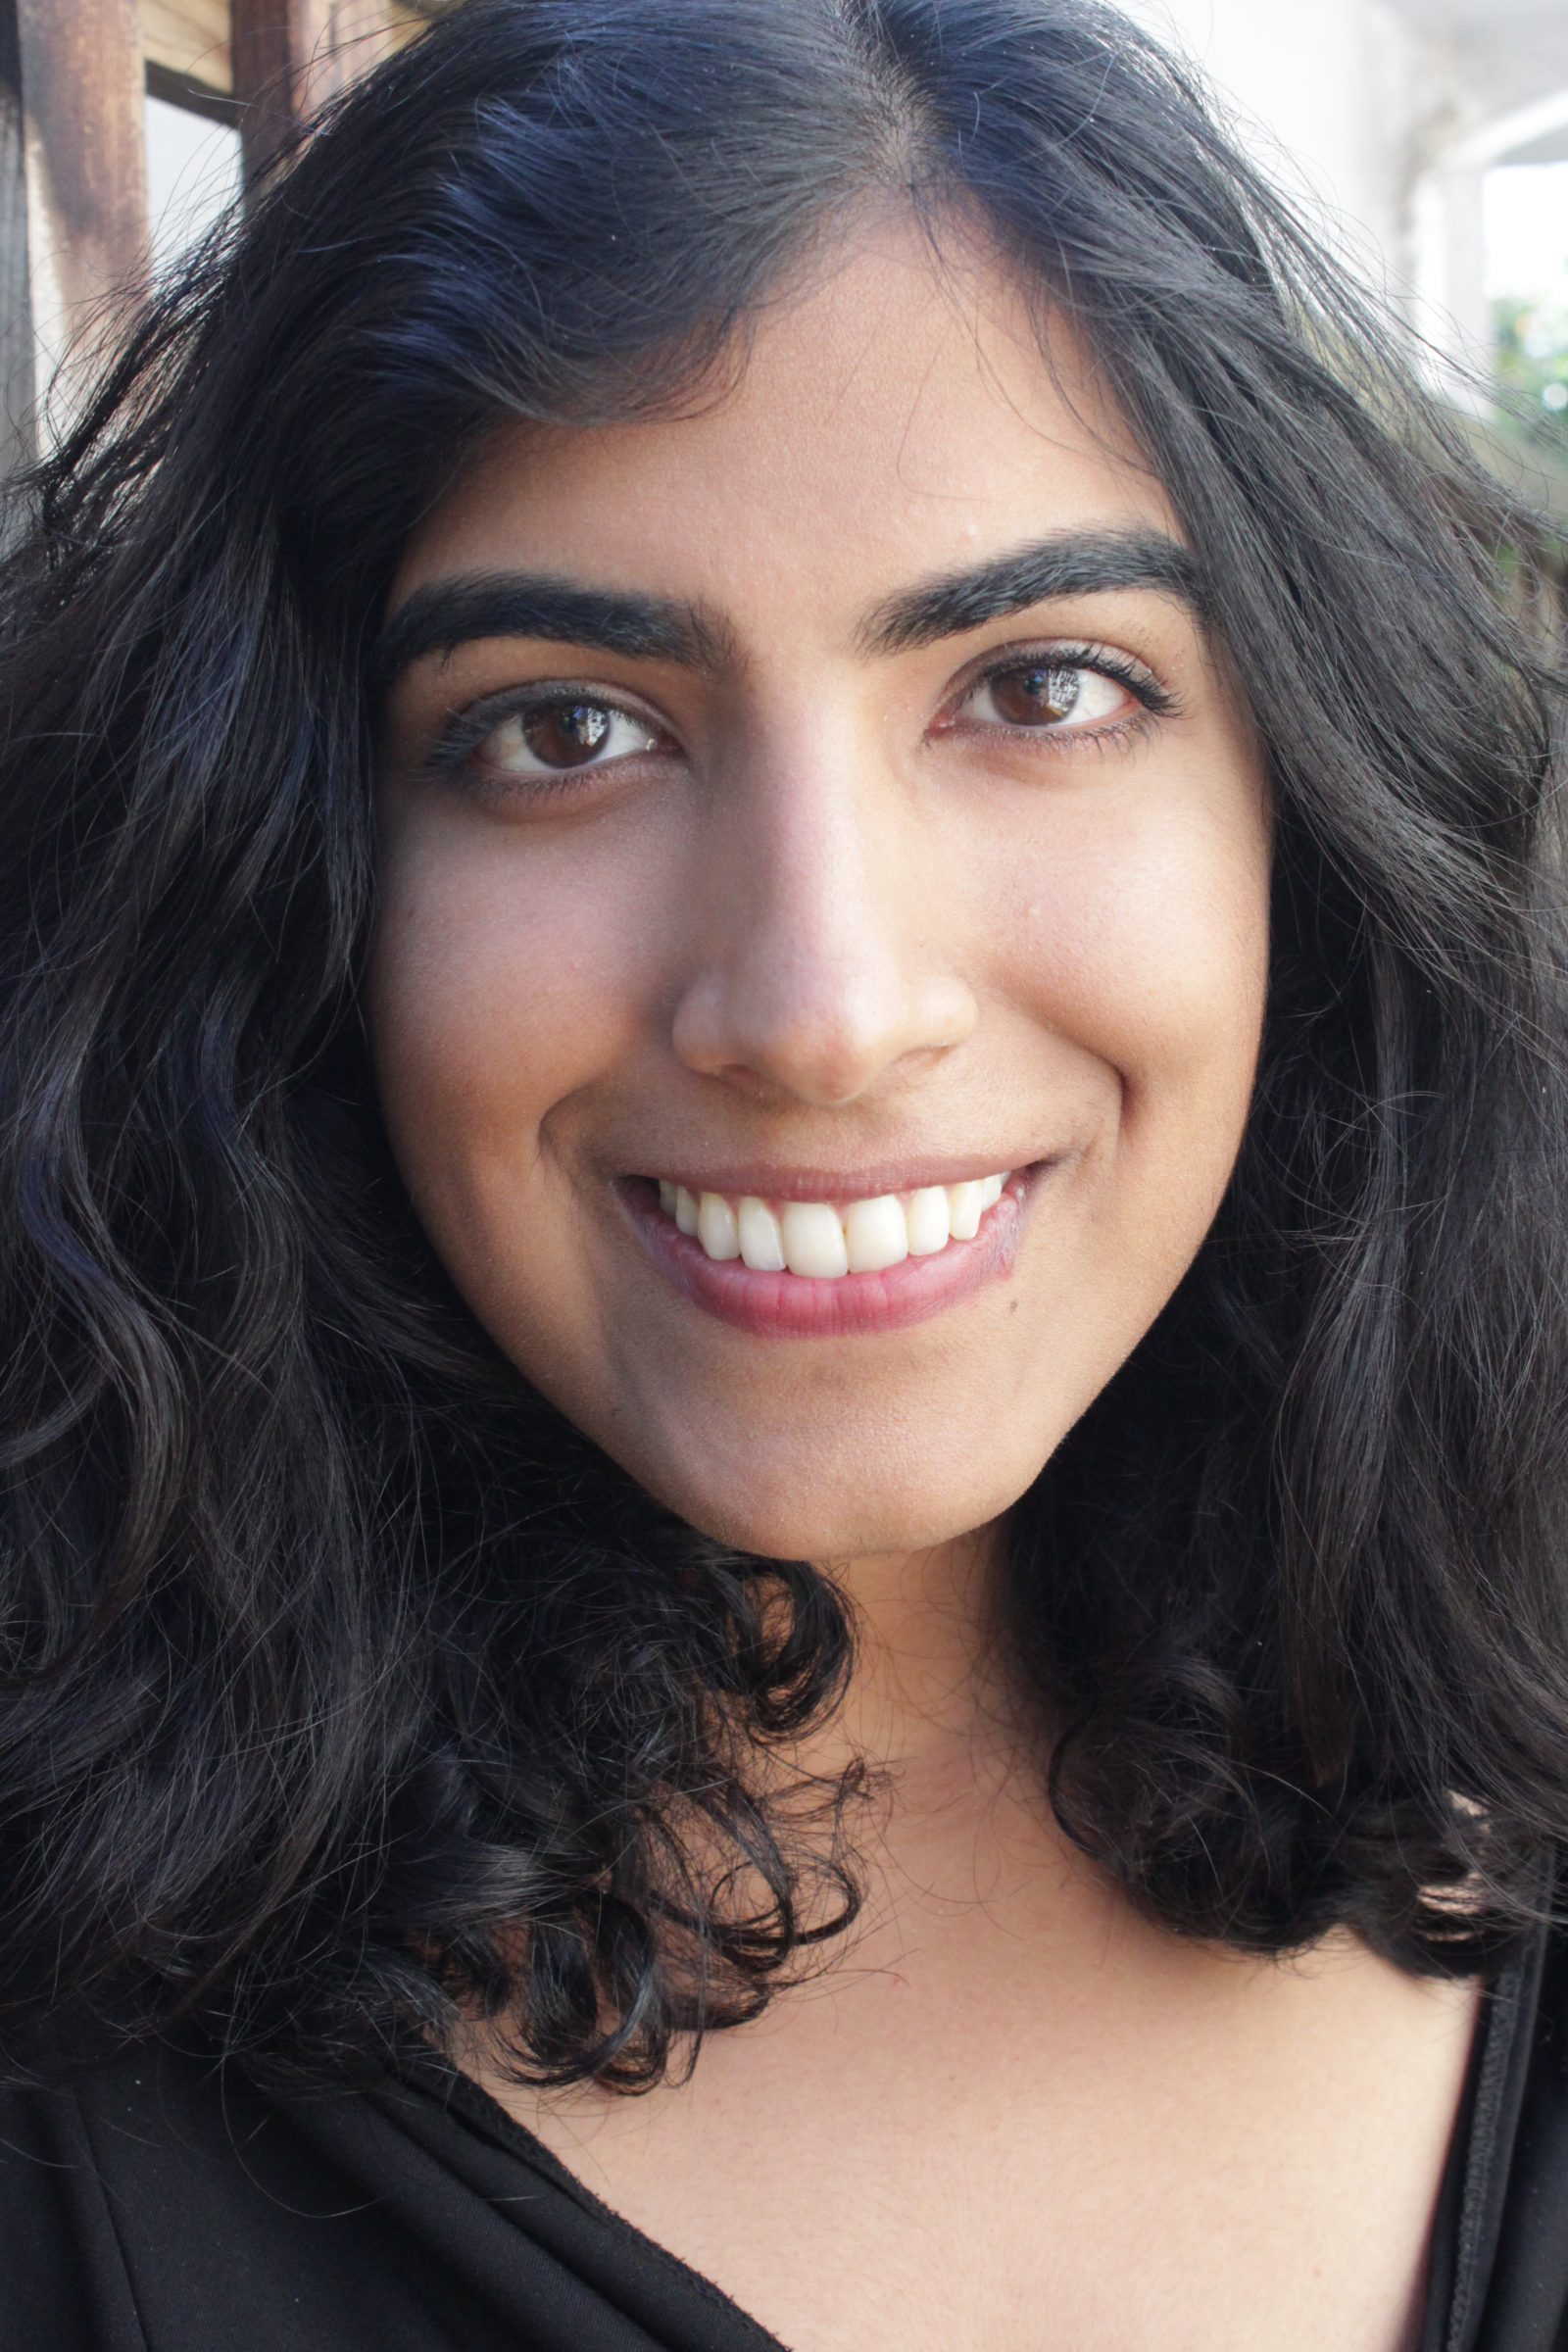 Image of Zahida Rahemtulla: Woman of South Asian descent with shoulder-lenght black hair, brown eyes and bright smile